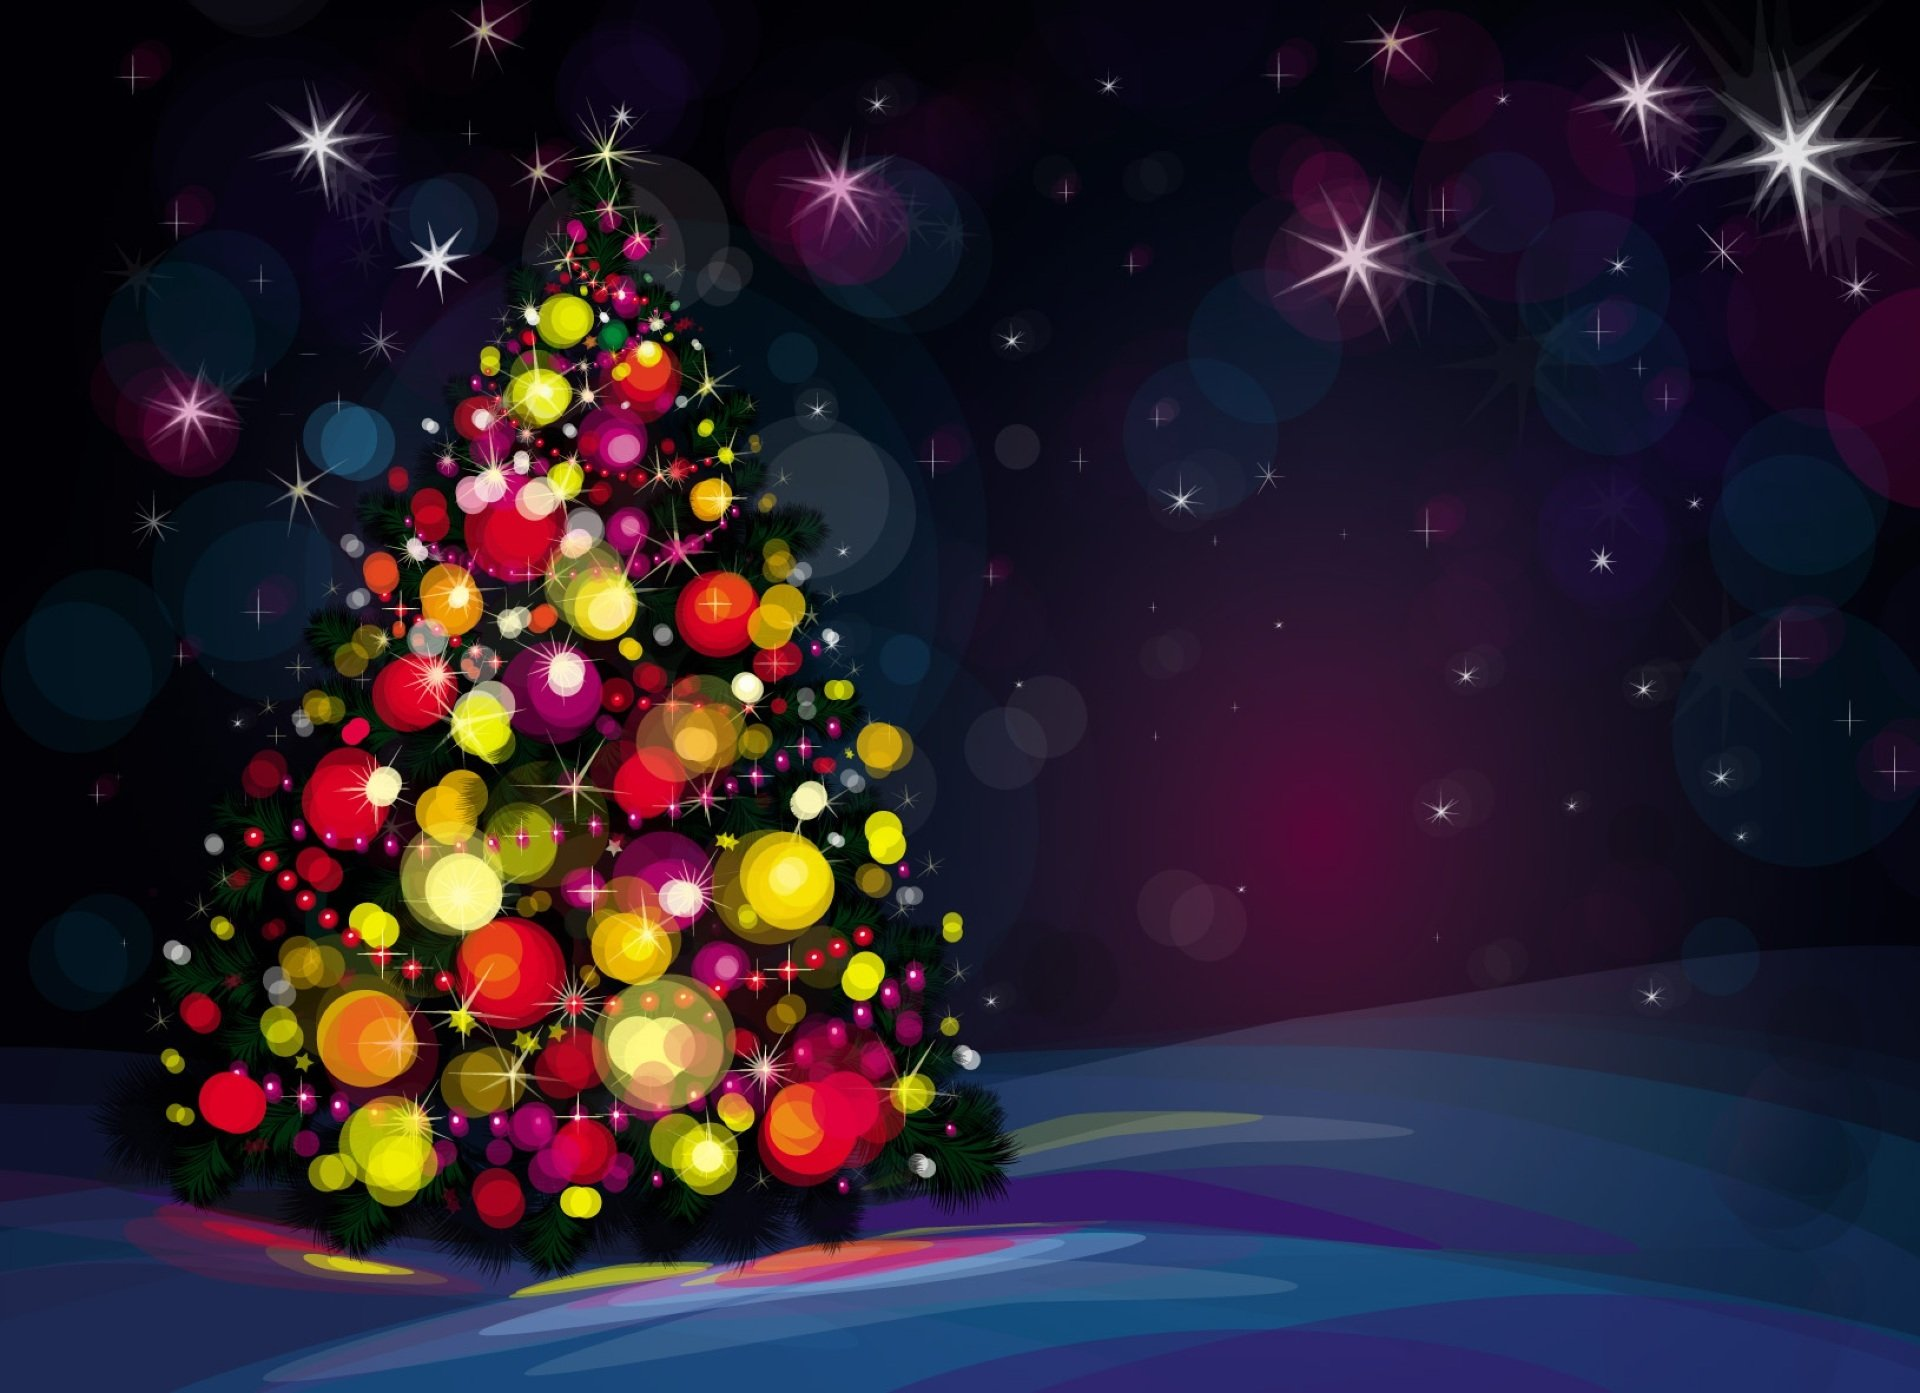 xmas tree hd wallpaper - sf wallpaper